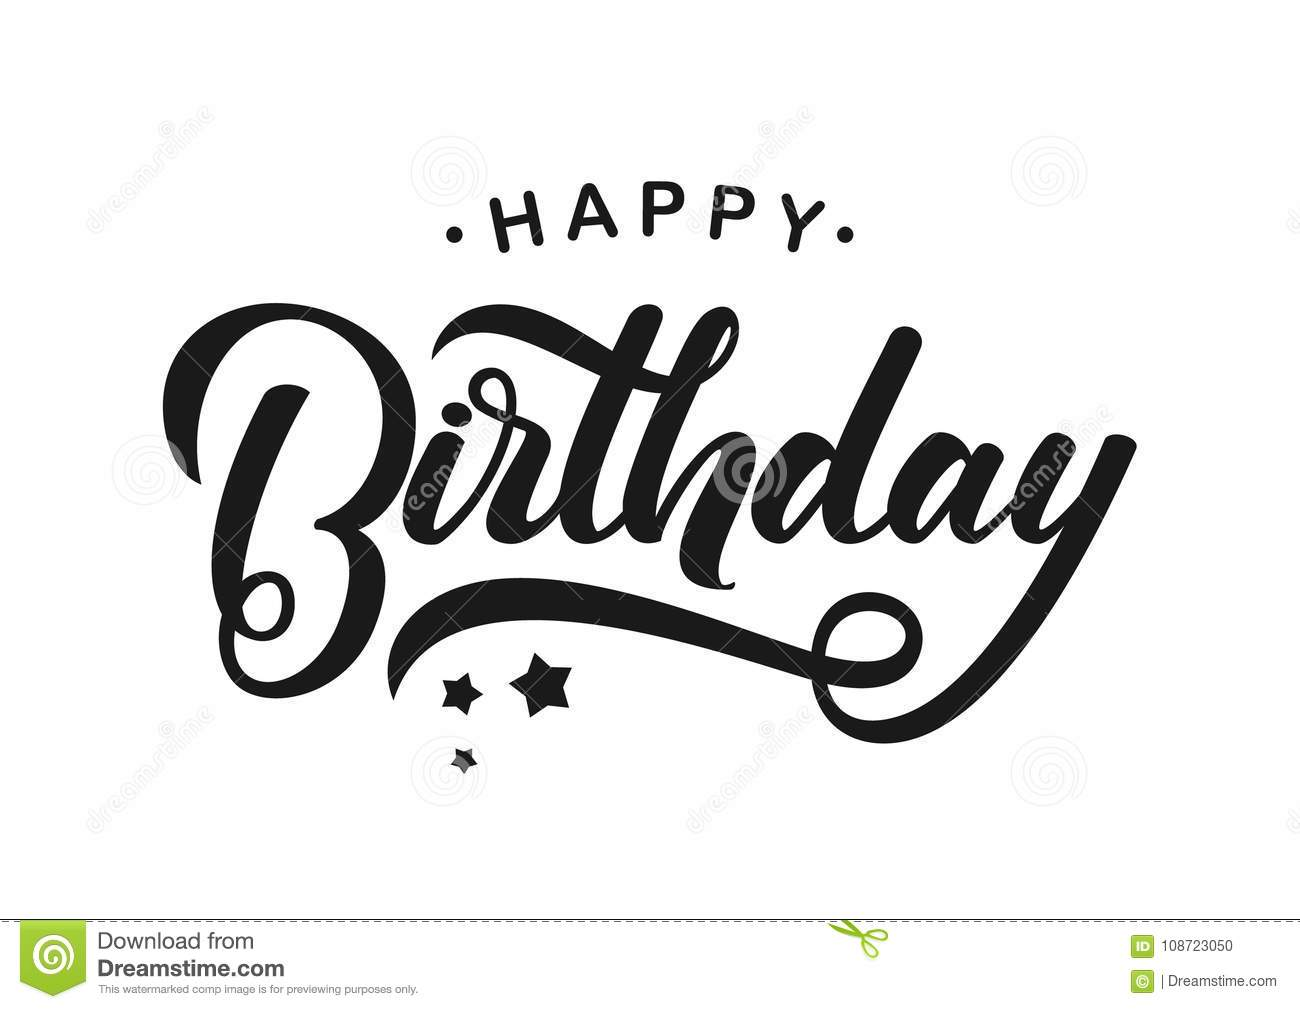 Download Handwritten Modern Brush Lettering Of Happy Birthday On White Background Typography Design Greetings